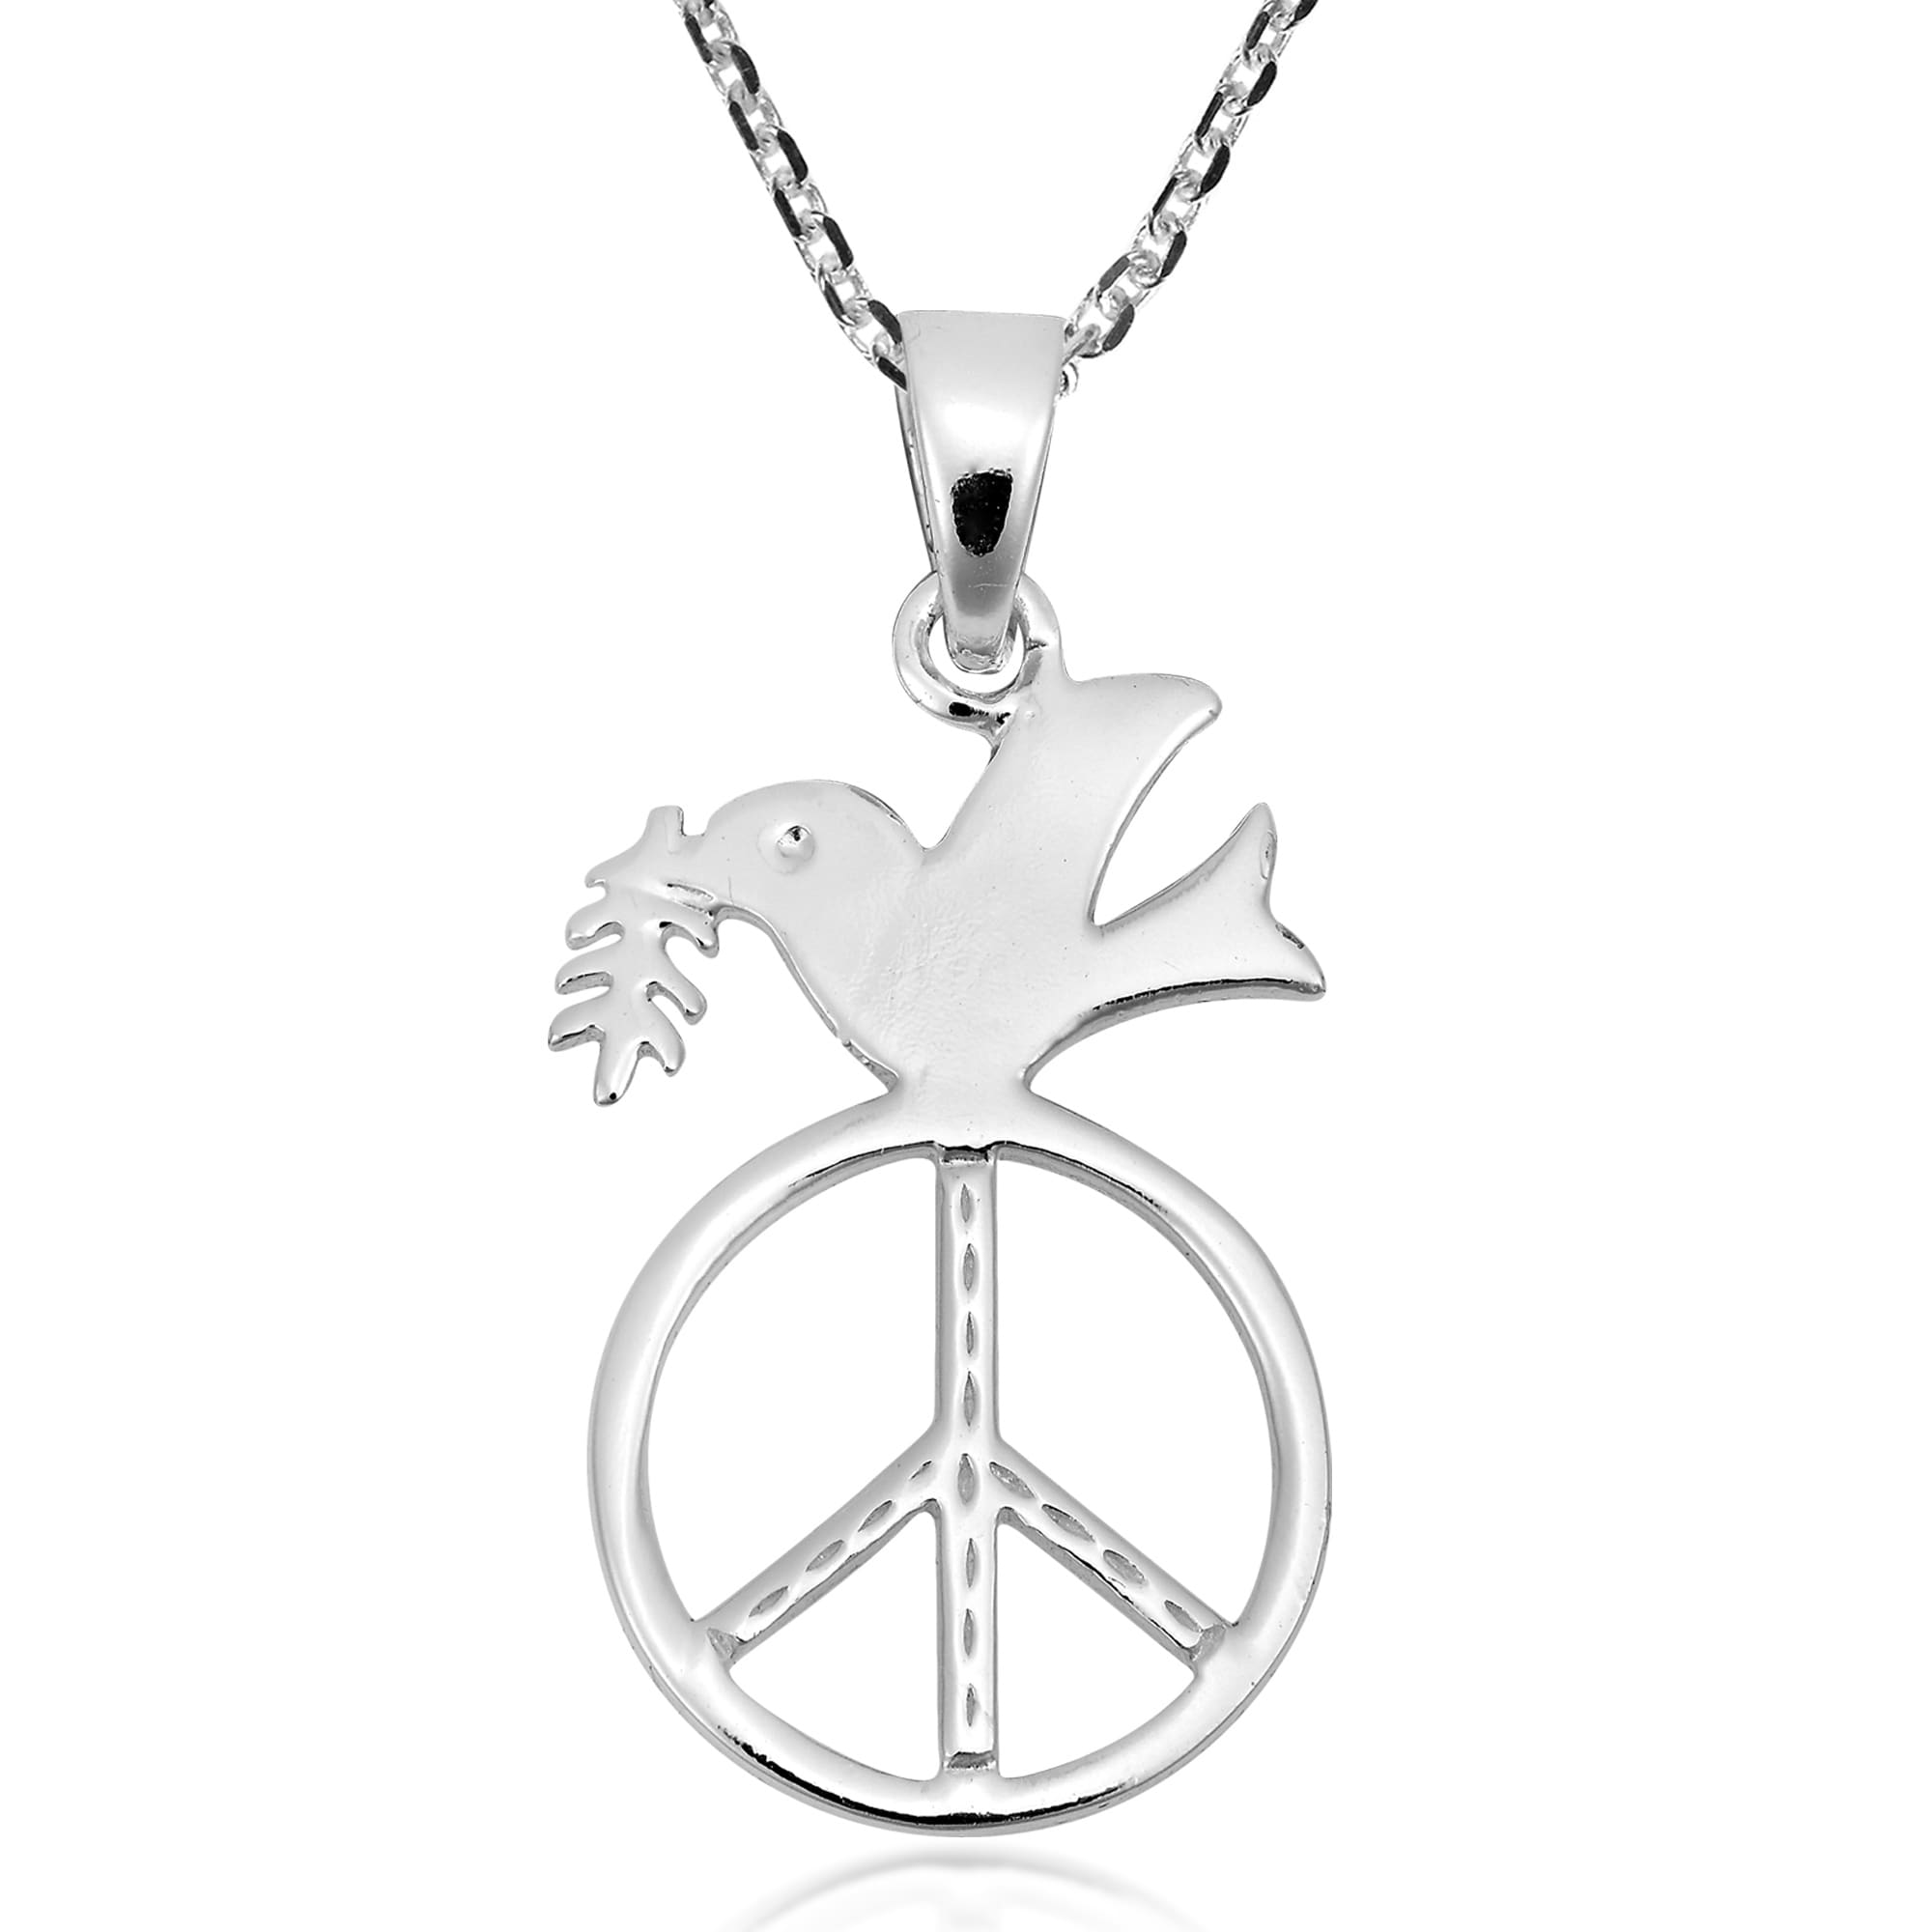 silver pendant necklace miansai dove men color products necklaces s sterling polishedsilver